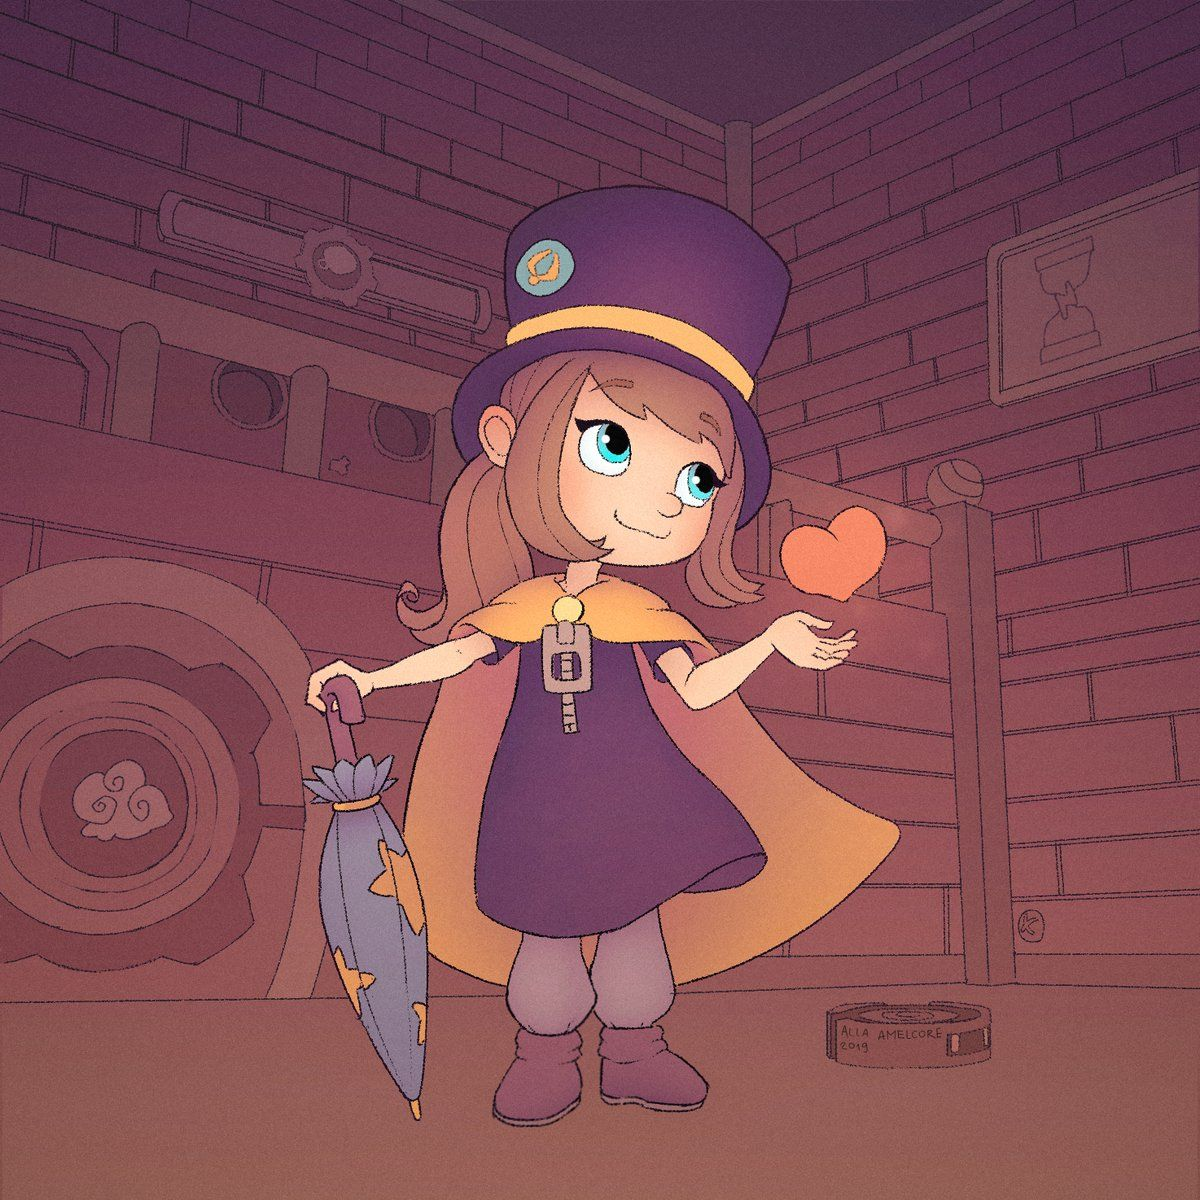 Amelkor Bezzakonie On Twitter Drew This Art Based On A Hat In Time Love This Game So Much 3 Hatintime A Hat In Time Hat In Time Art A Hat